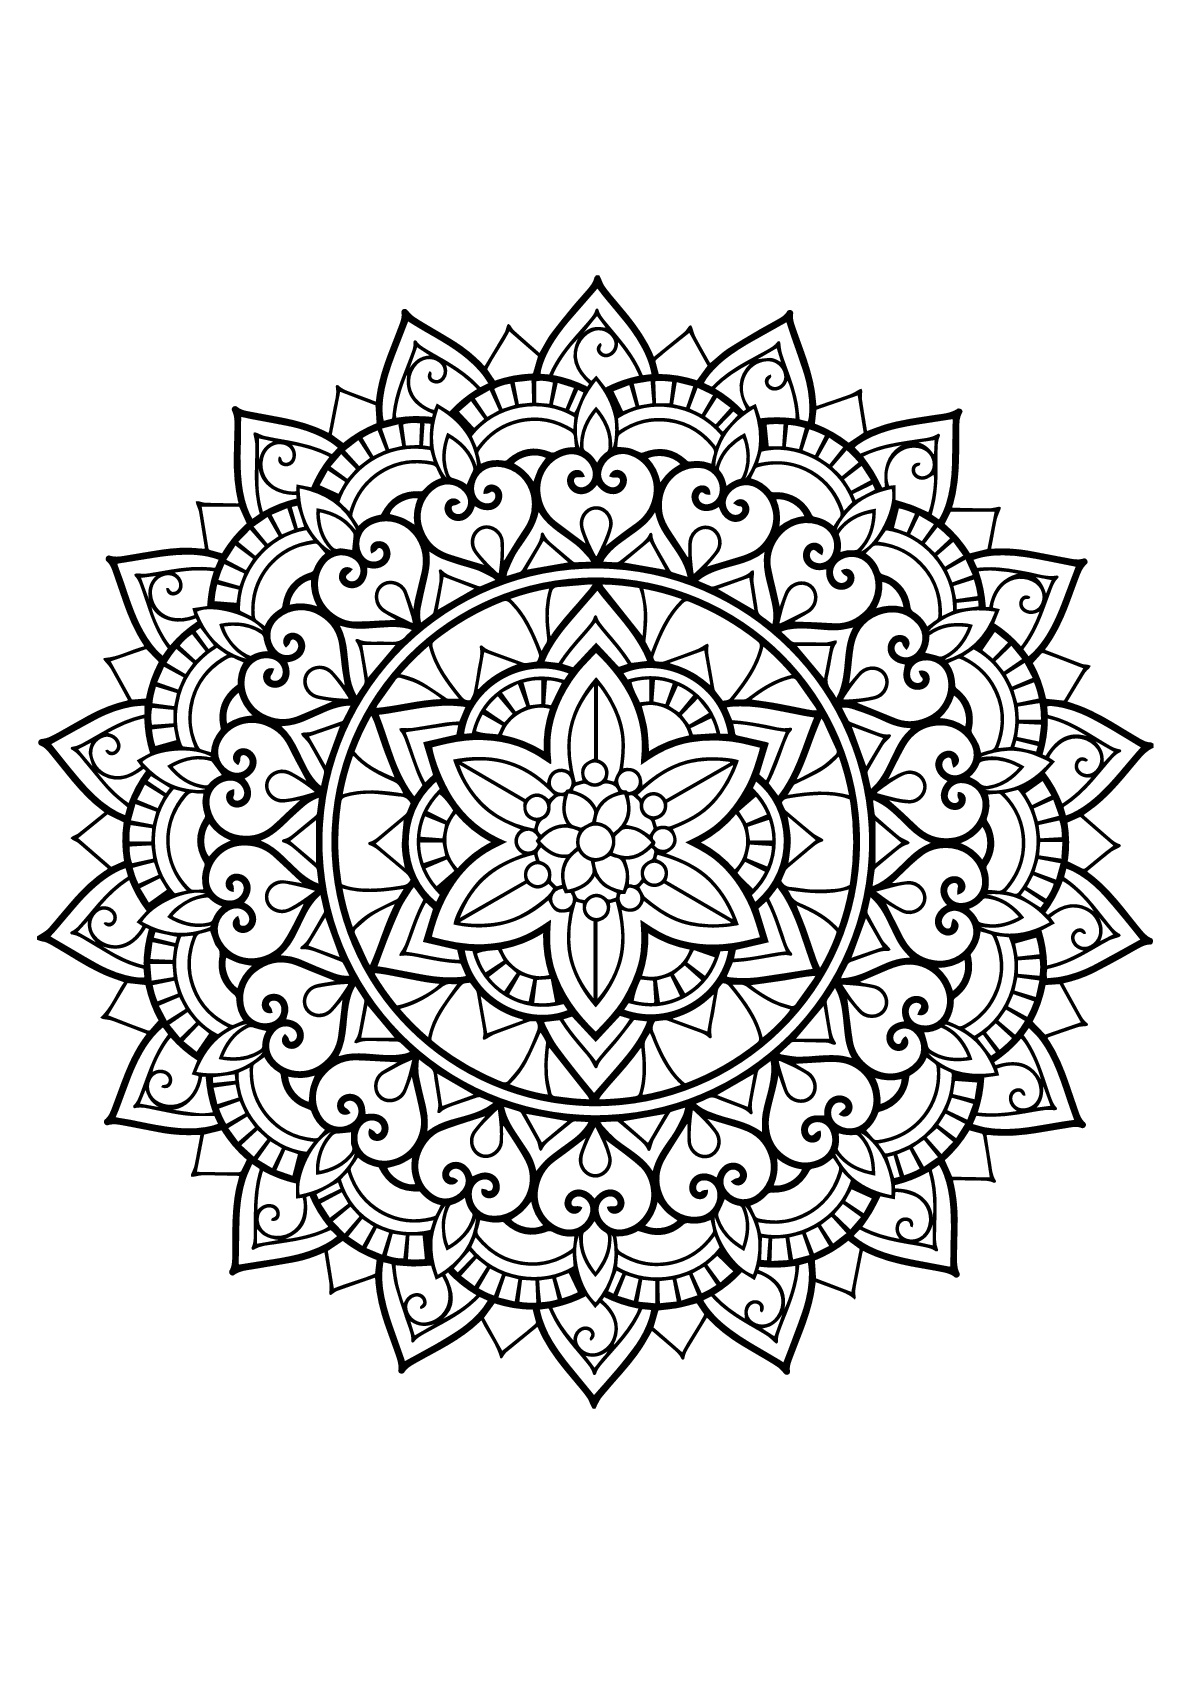 free printable mandalas to color for adults printable mandala coloring pages for kids cool2bkids for to printable adults color free mandalas